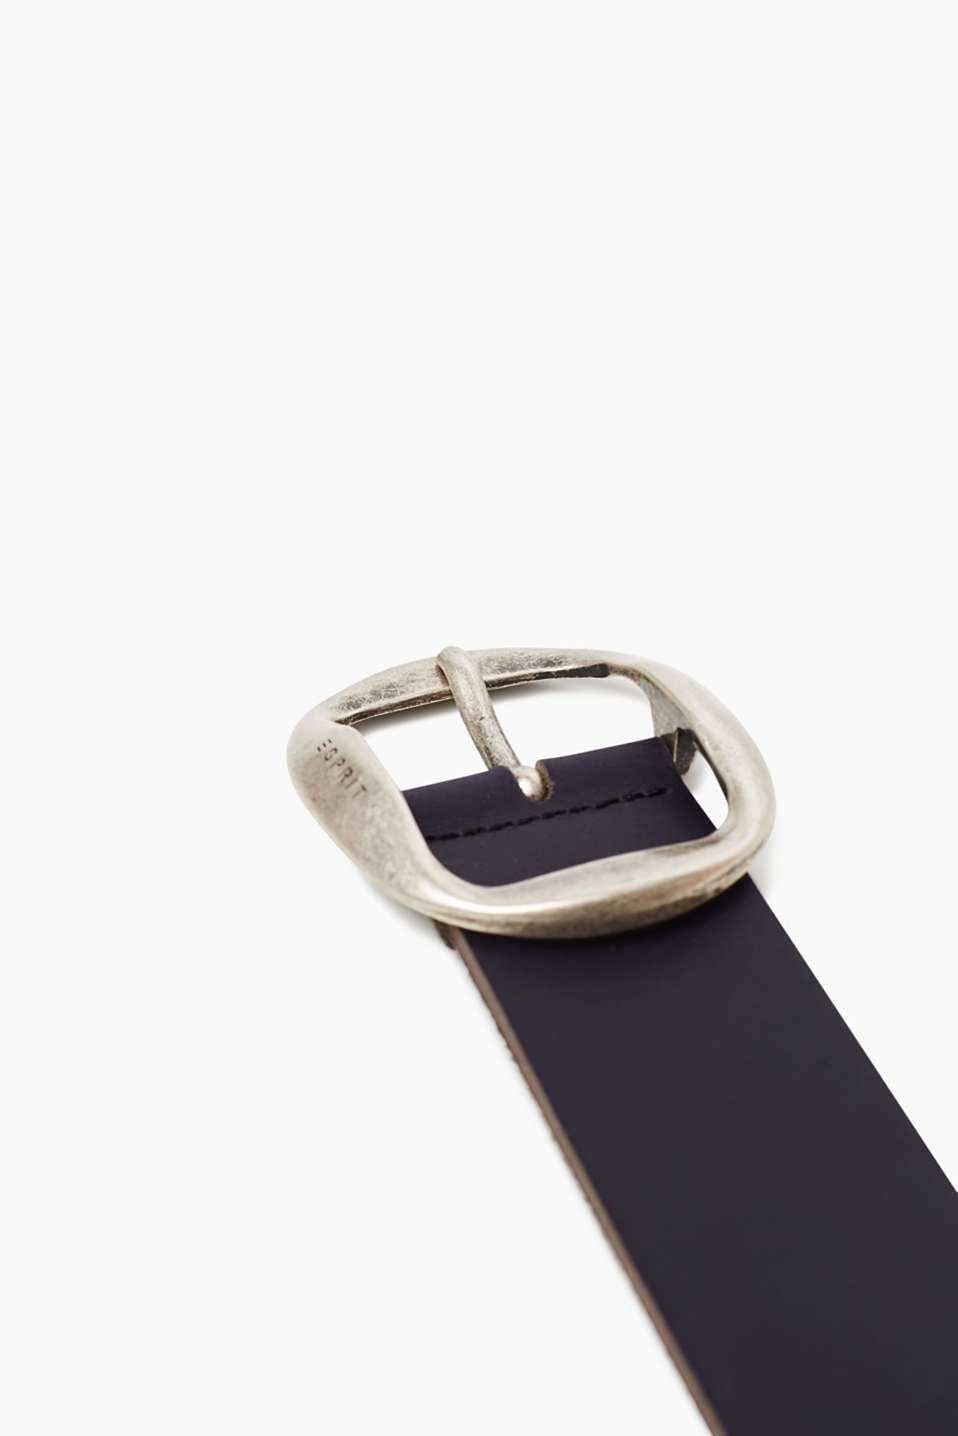 Leather belt with a striking metal buckle